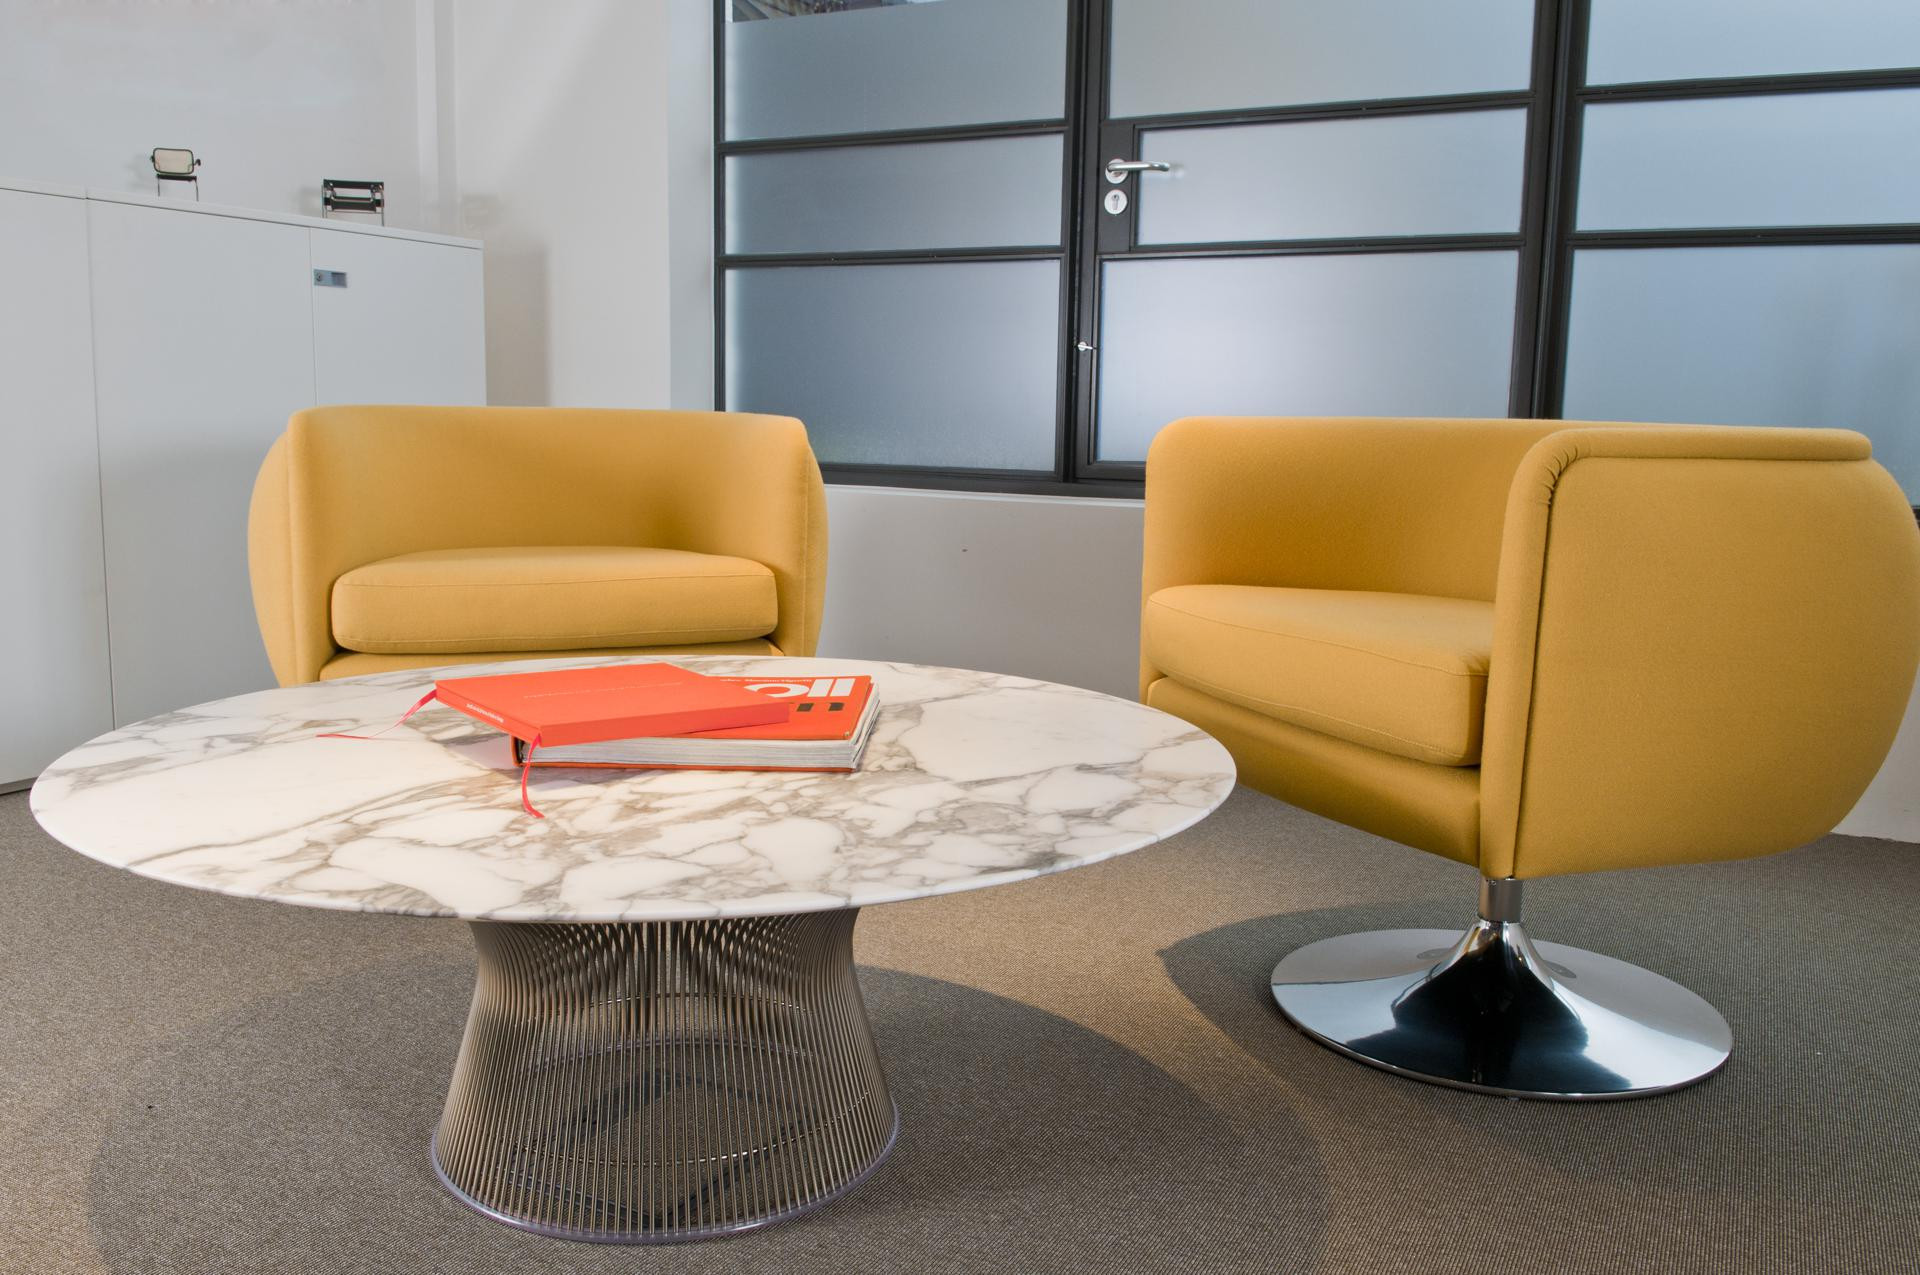 Coffee Table Polished Of Platner Side Table With Yellow Sofas And Grey  Floor With Carpet